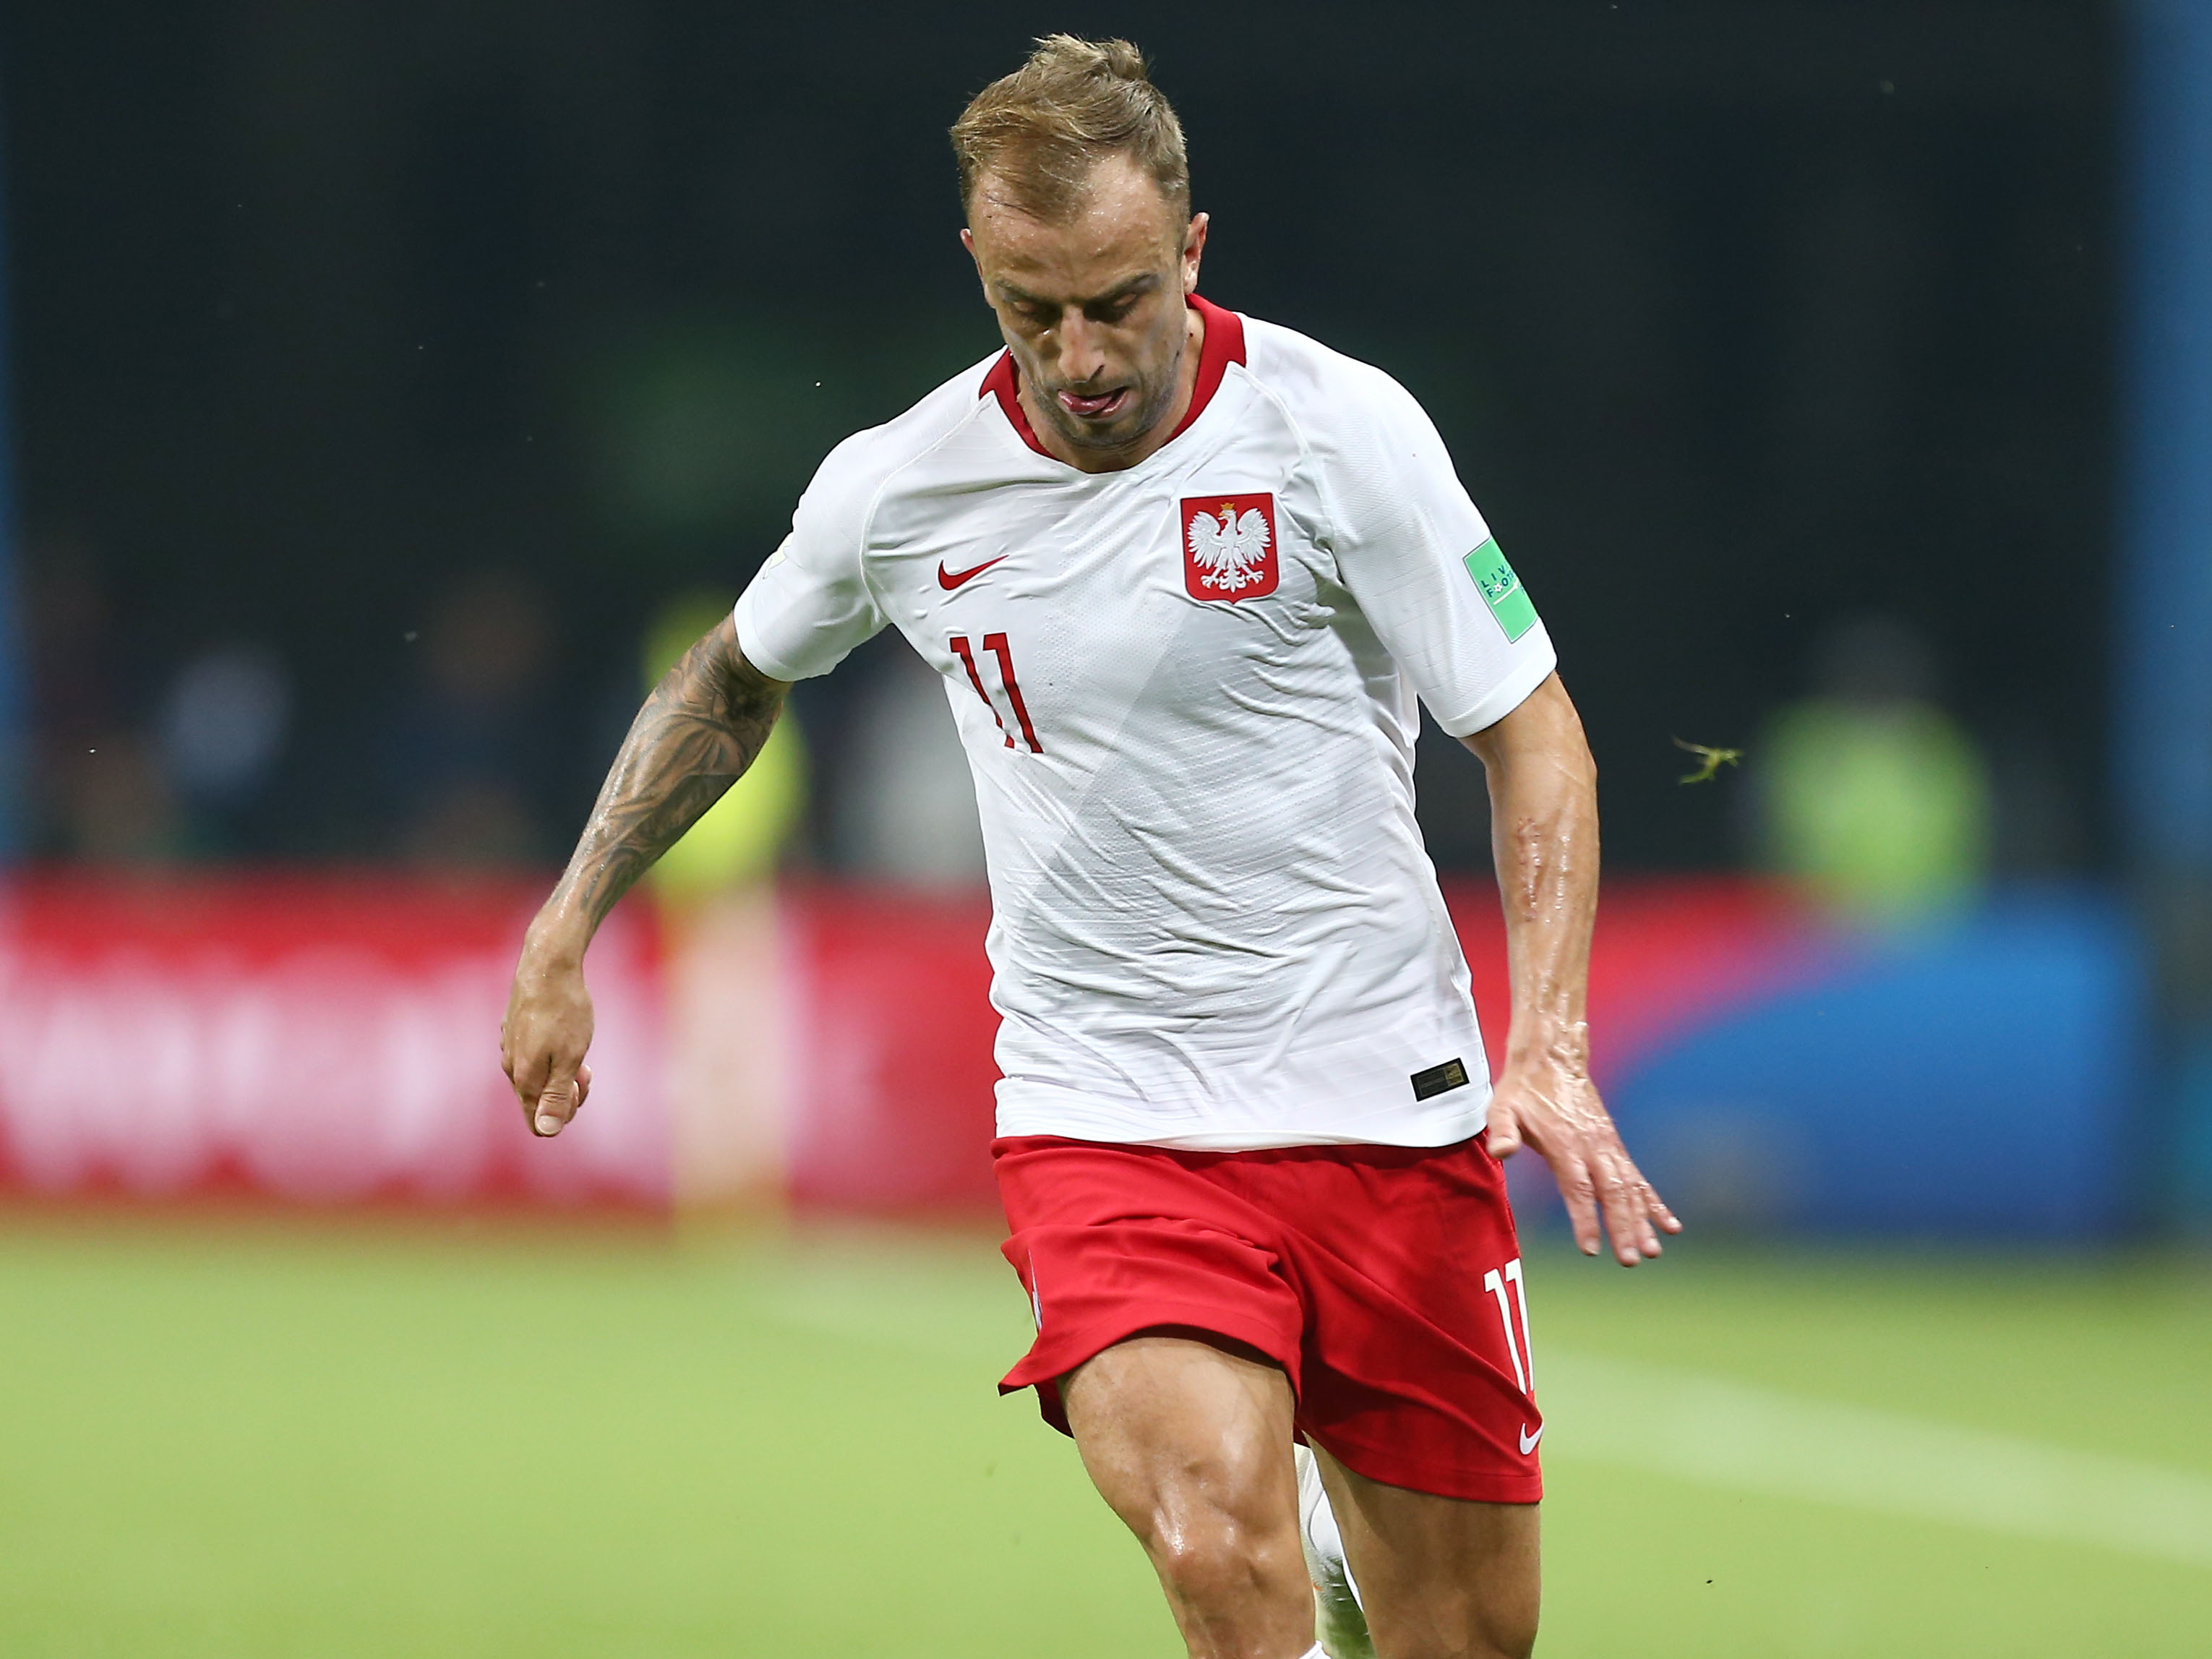 Grosicki playing for Poland